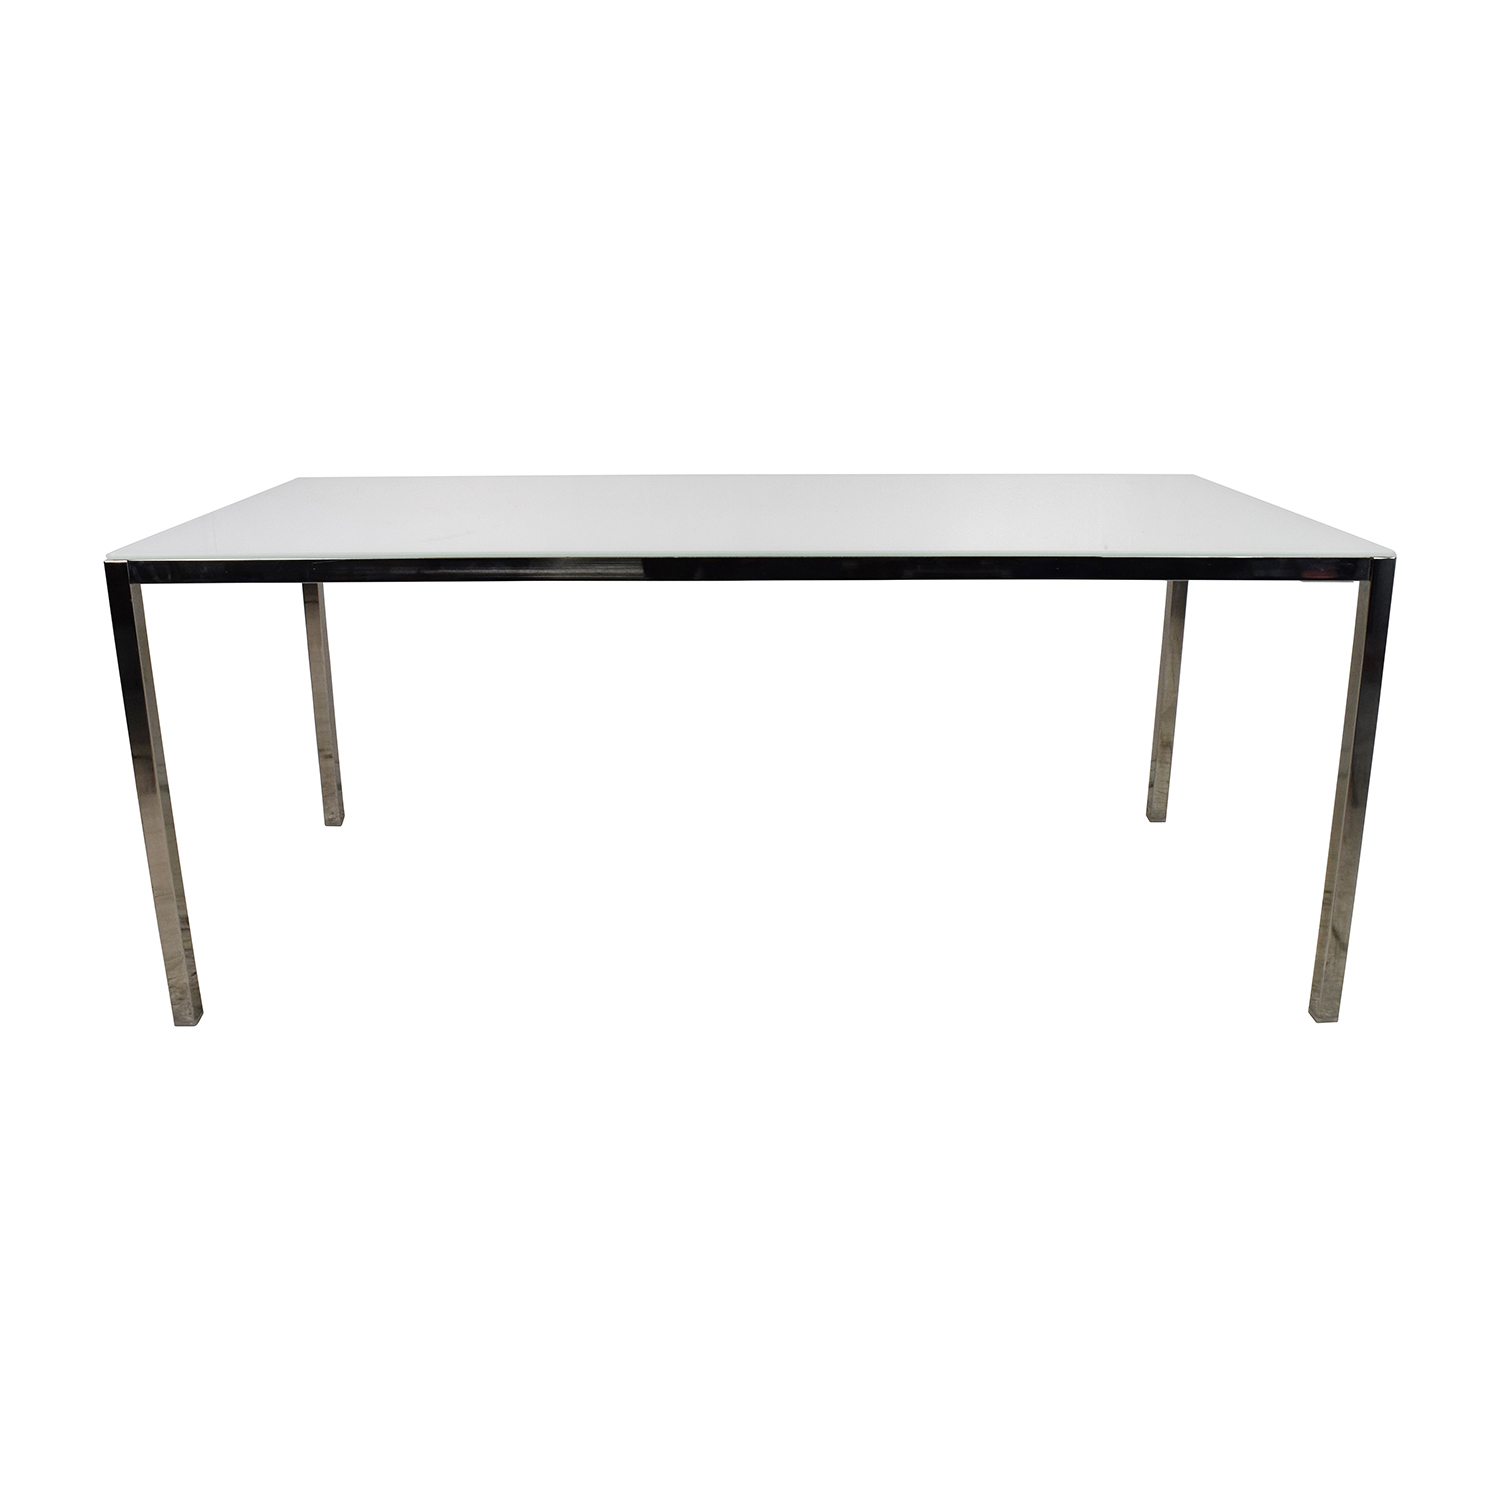 65 off ikea torsby large glass dining table tables